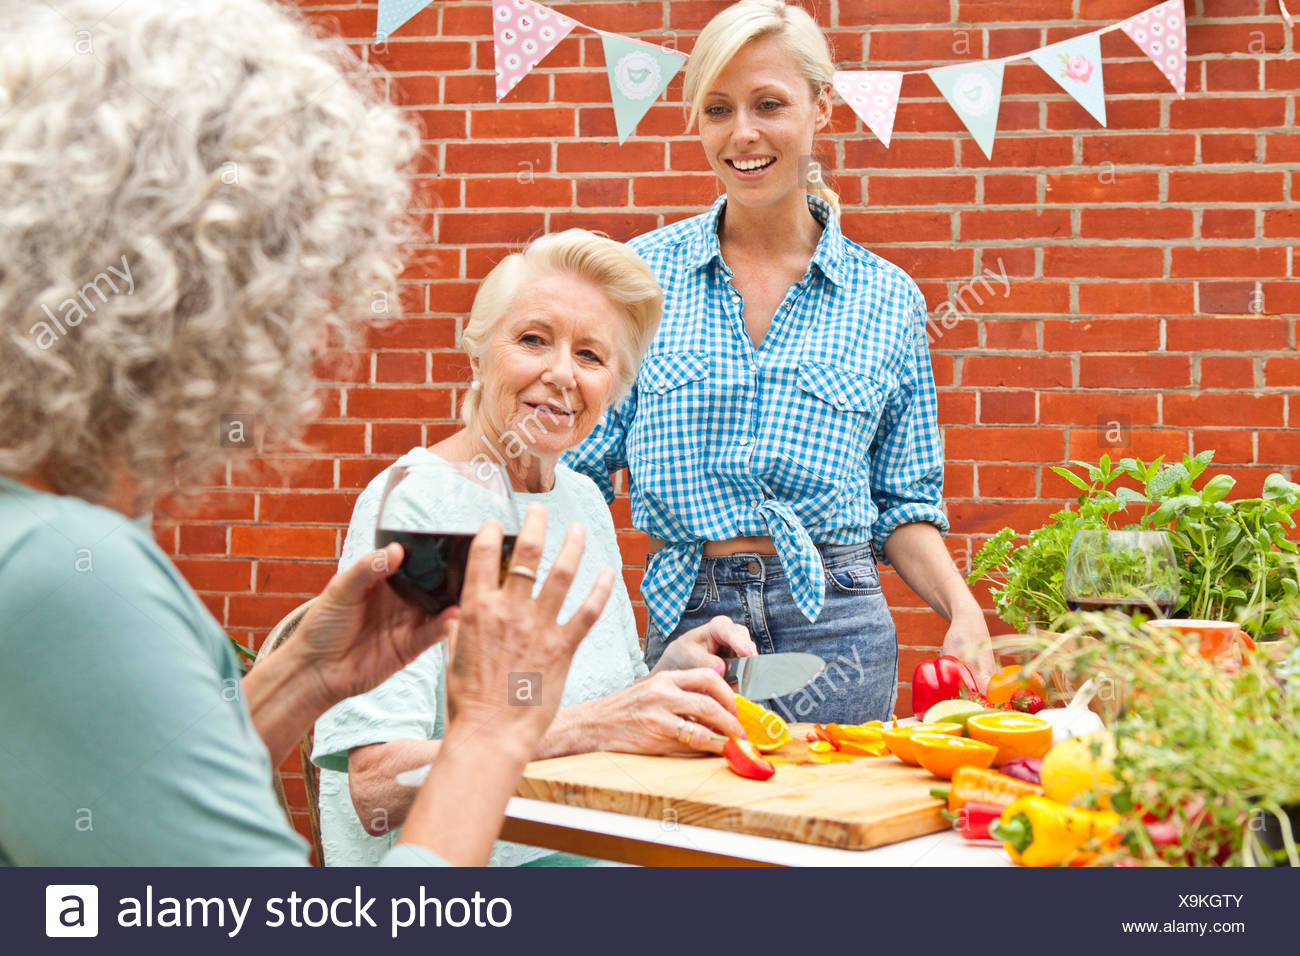 Three generation women chatting while preparing food at garden table - Stock Image